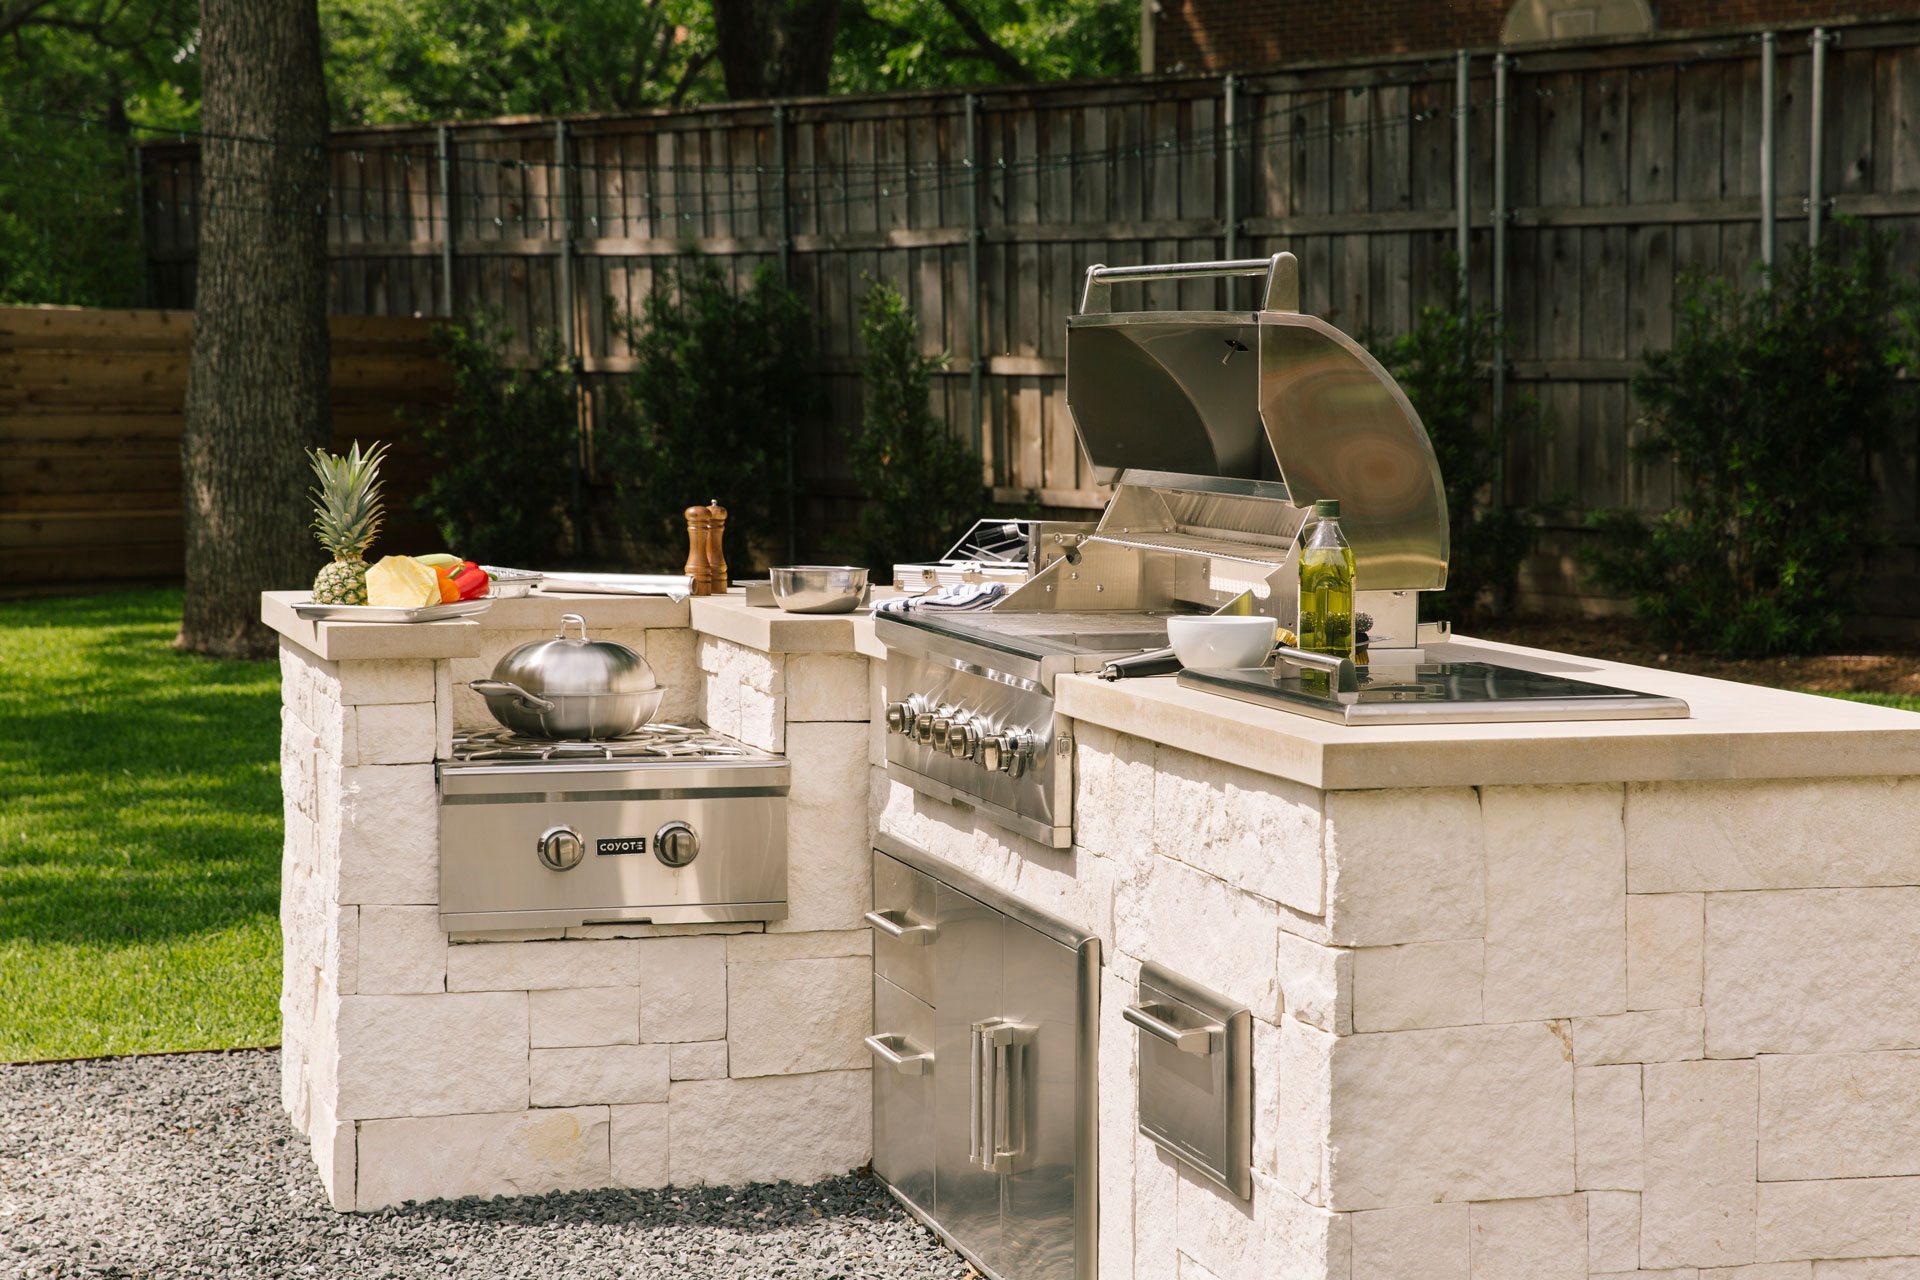 Wholesale Kitchen Cabinets Long Island Coyote Outdoor Appliances - Arizona Wholesale Supply